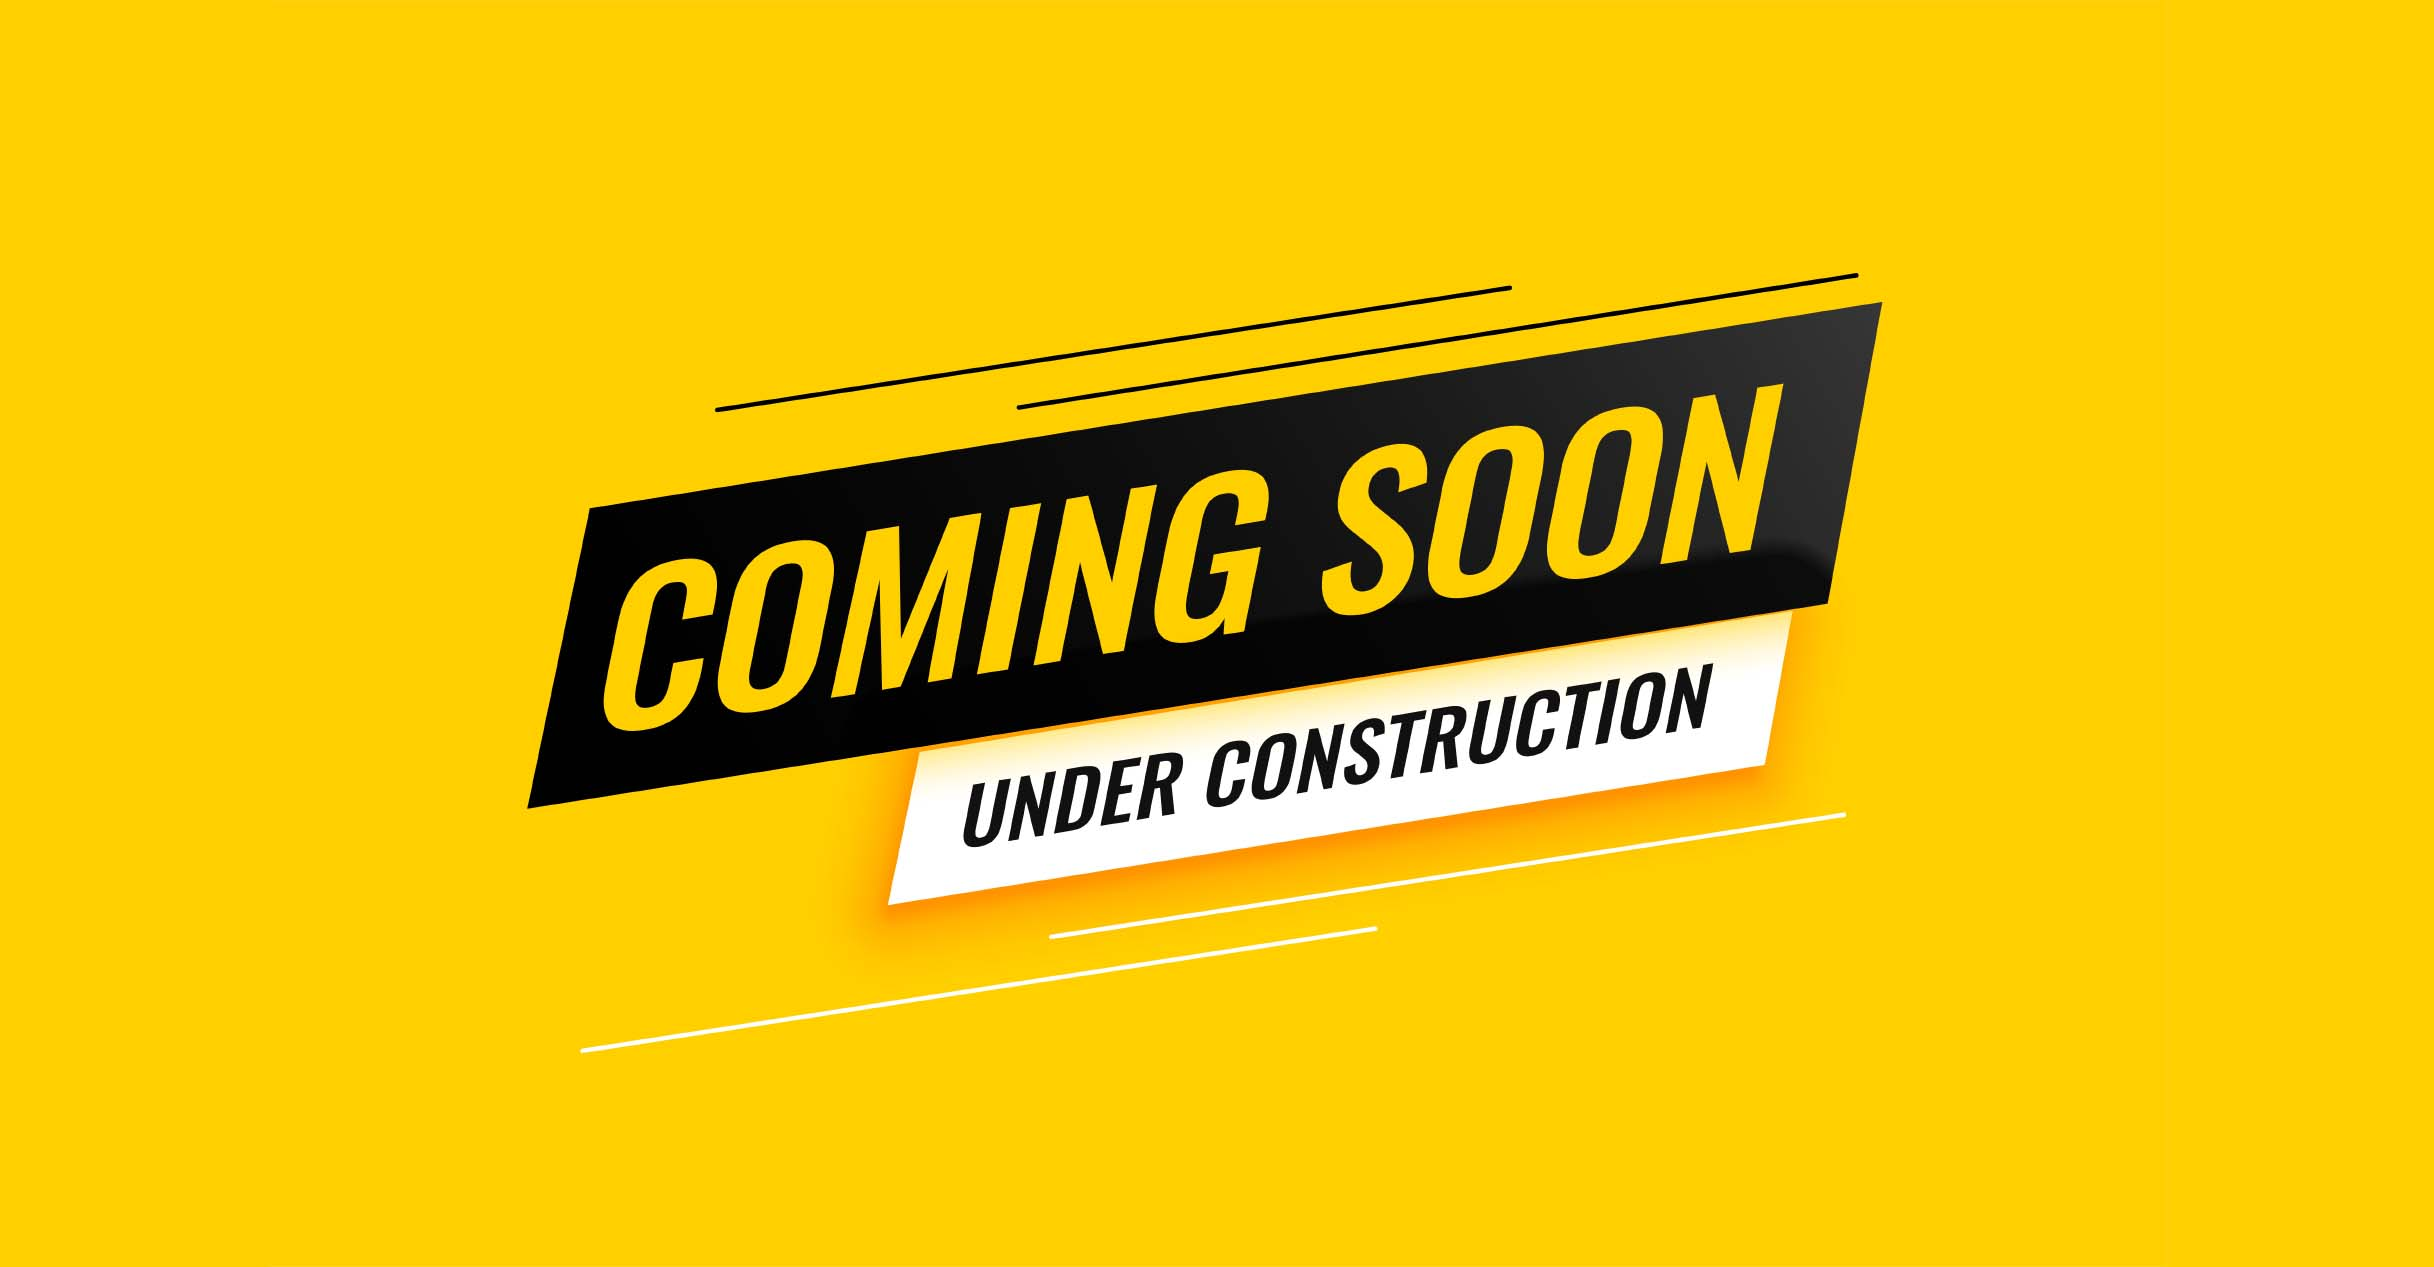 coming soon under construction yellow background design